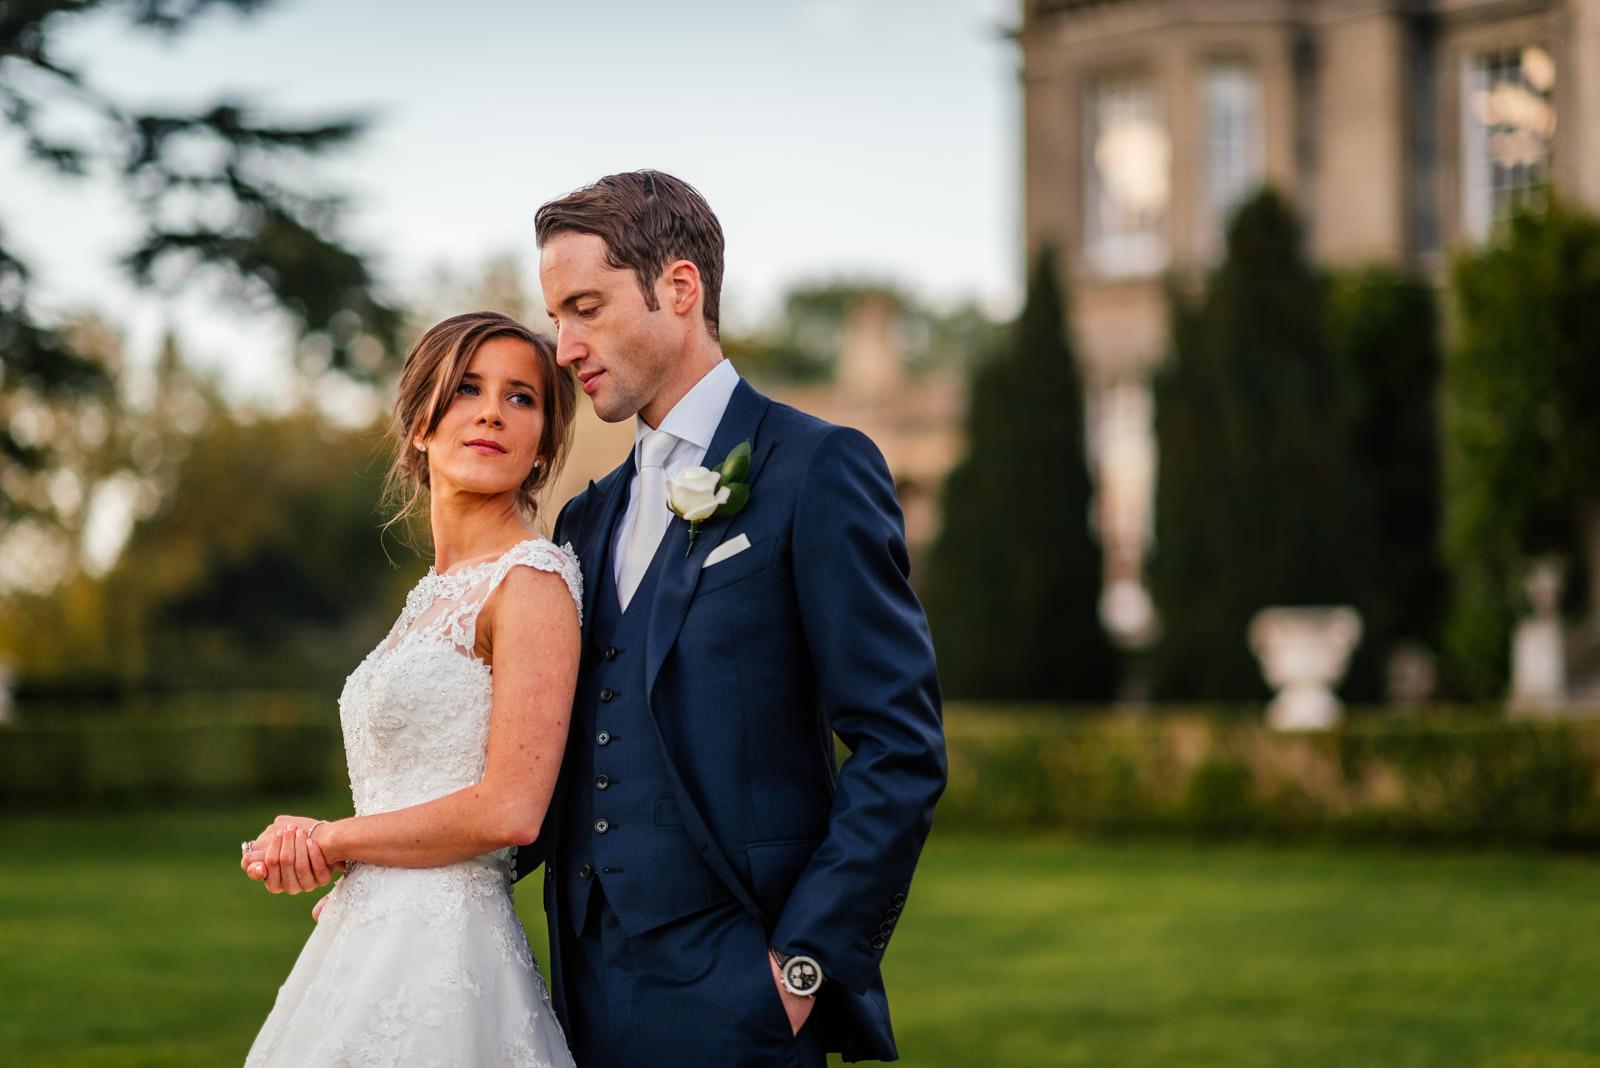 Bride and groom portrait at Hedsor House, Buckinghamshire